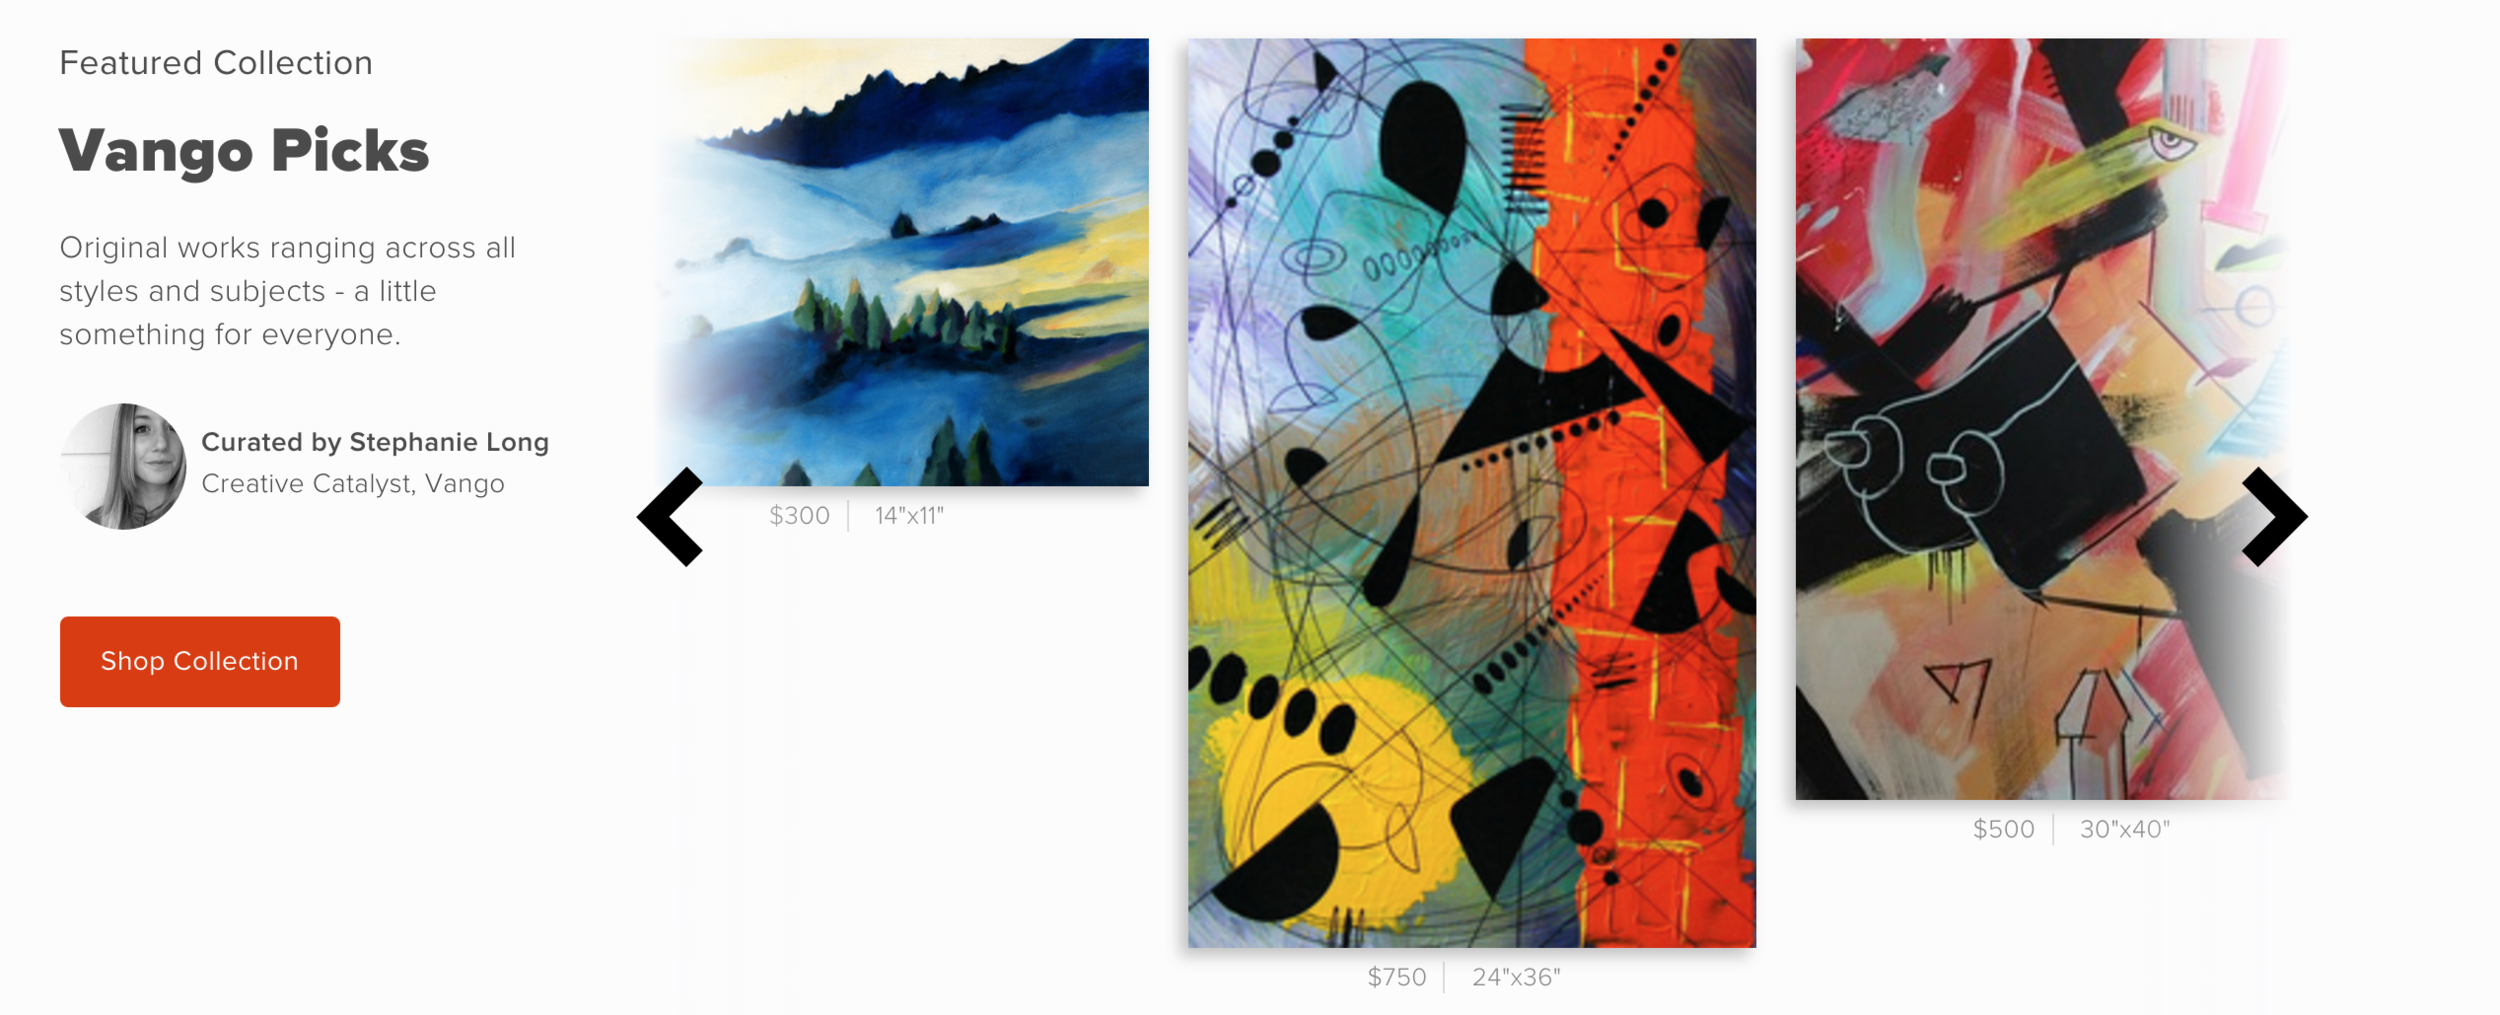 Now this is a homepage that features artists and their work. (One section on the homepage)